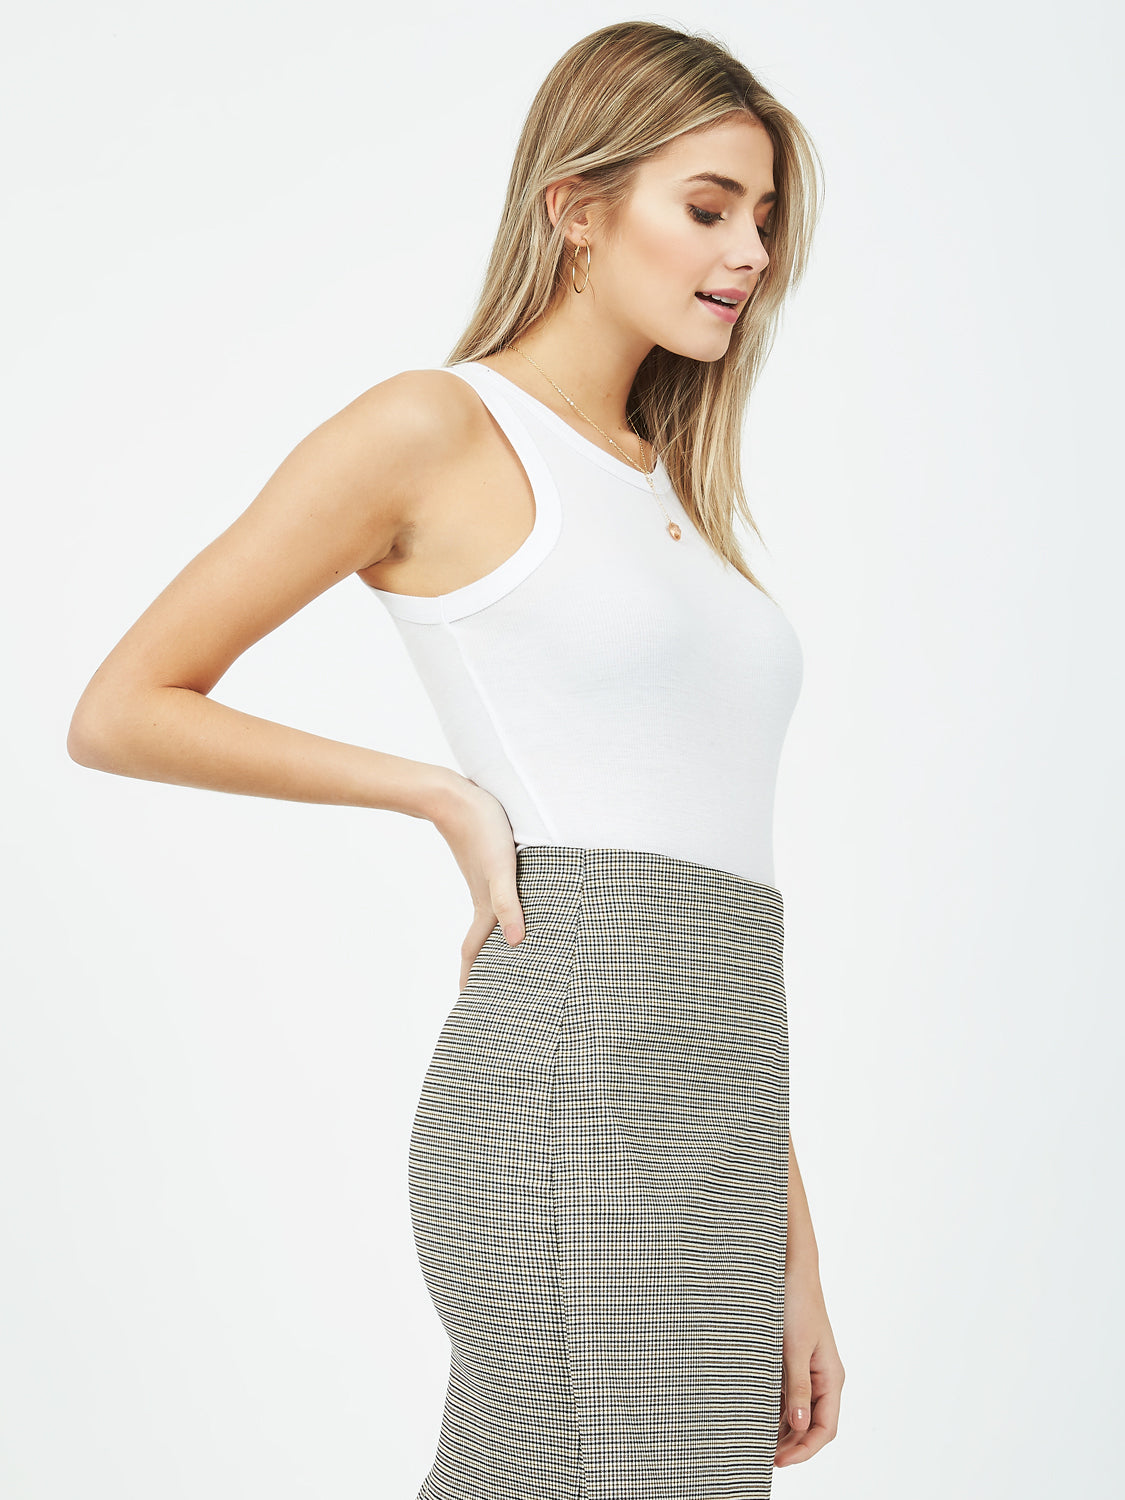 0a90d41afe8 Suzy Shier | Shop Women's Fashion & Latest Clothing Trends